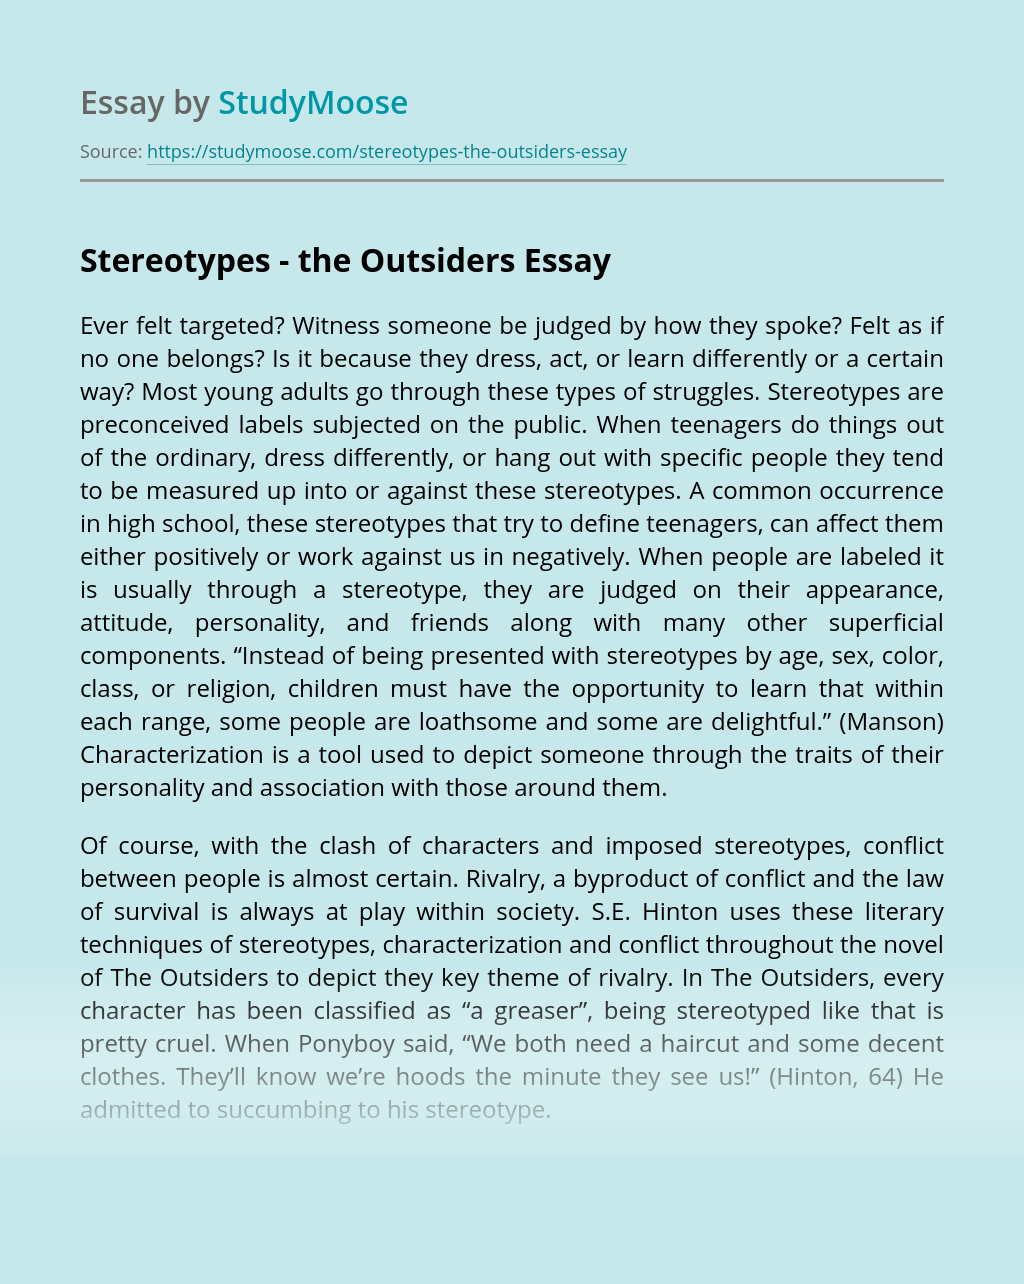 Essays on The Outsiders. Essay topics and examples of research paper about The Outsiders